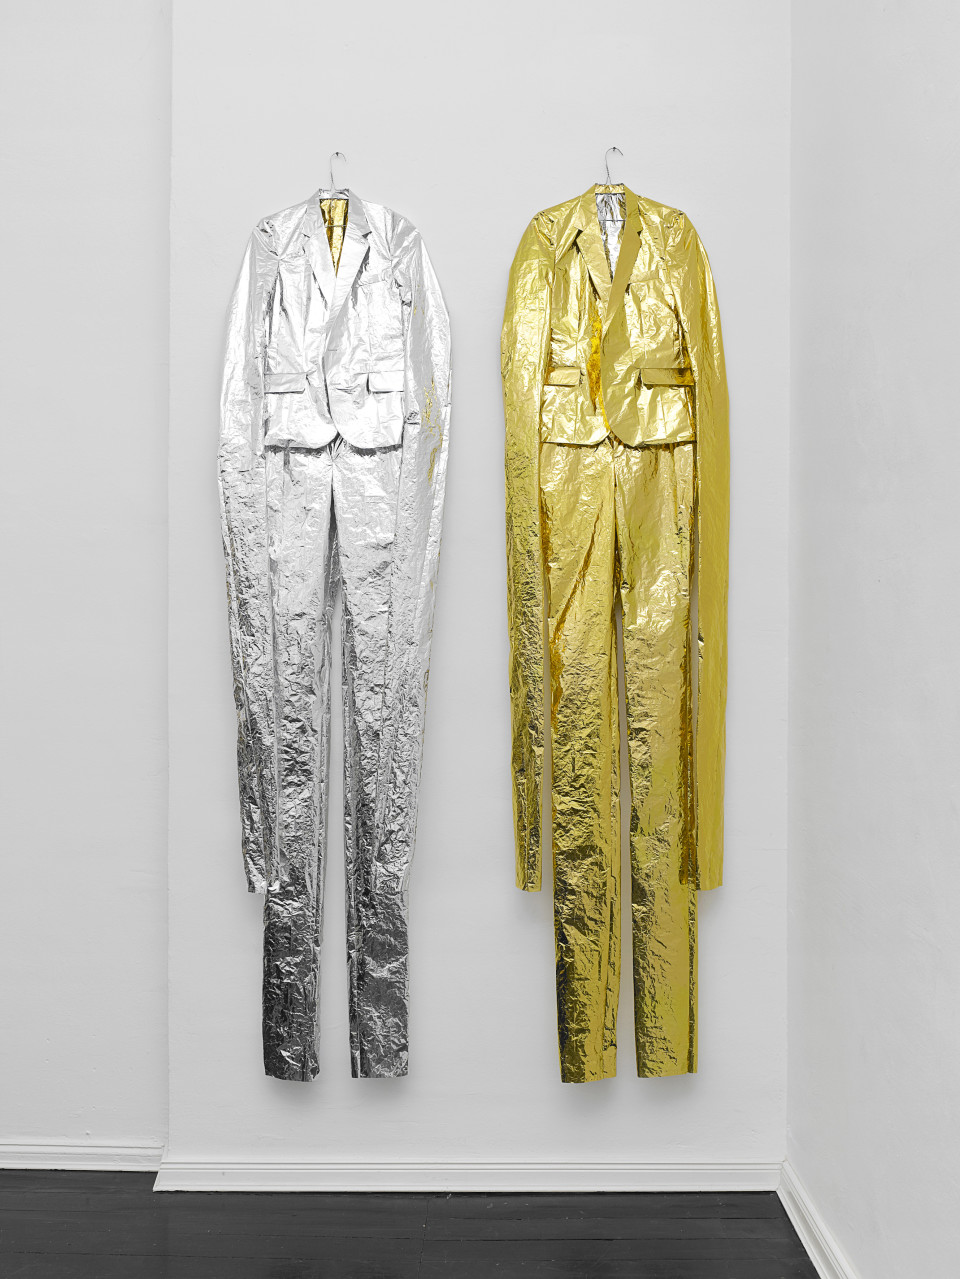 Fiete Stolte Suits, 2012 Signed and numbered certificate 2 Tailor made suits (each consisting of jacket and trouser) Made from rescue sheet Each ca. 210 x 60 cm In a custom made box Edition of 10